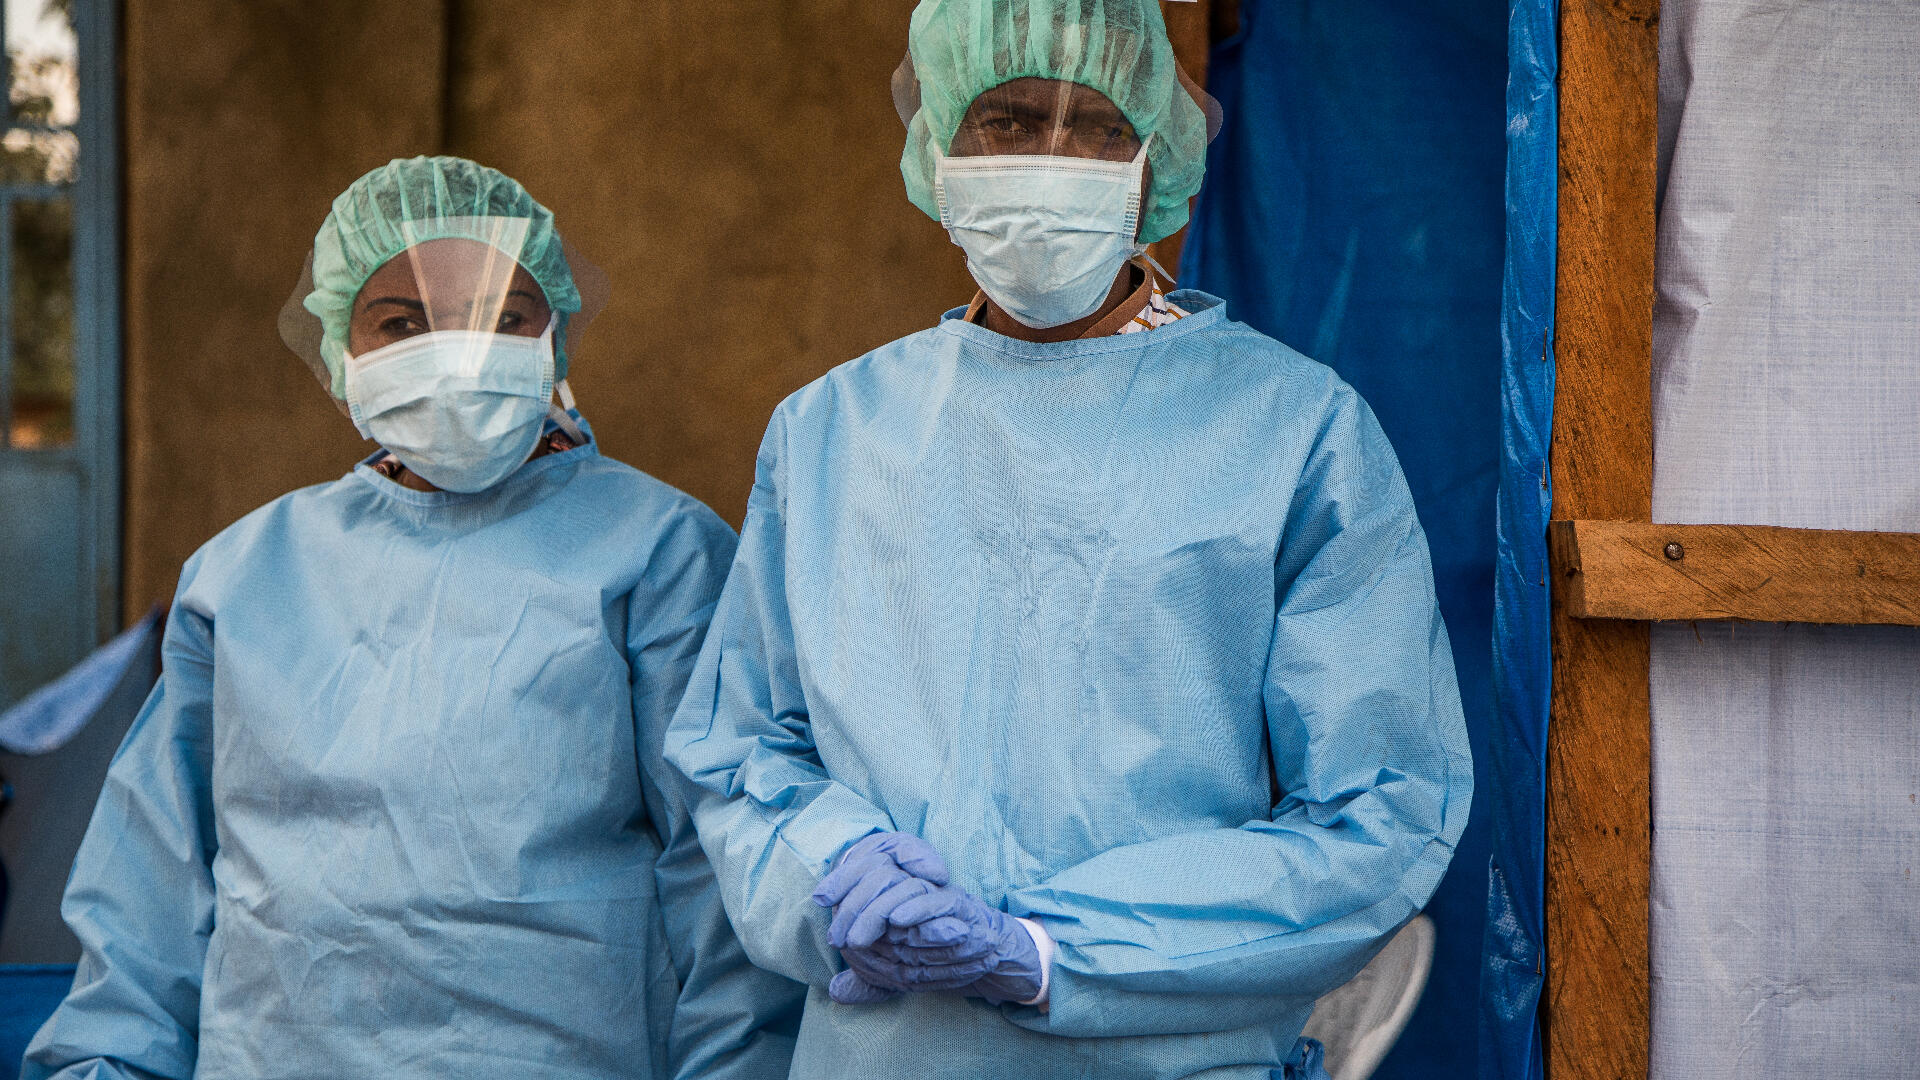 Two IRC staff members, a woman and a man, wear full personal protective equipment (PPE) during an outbreak of Ebola in the Democratic Republic of Congo.